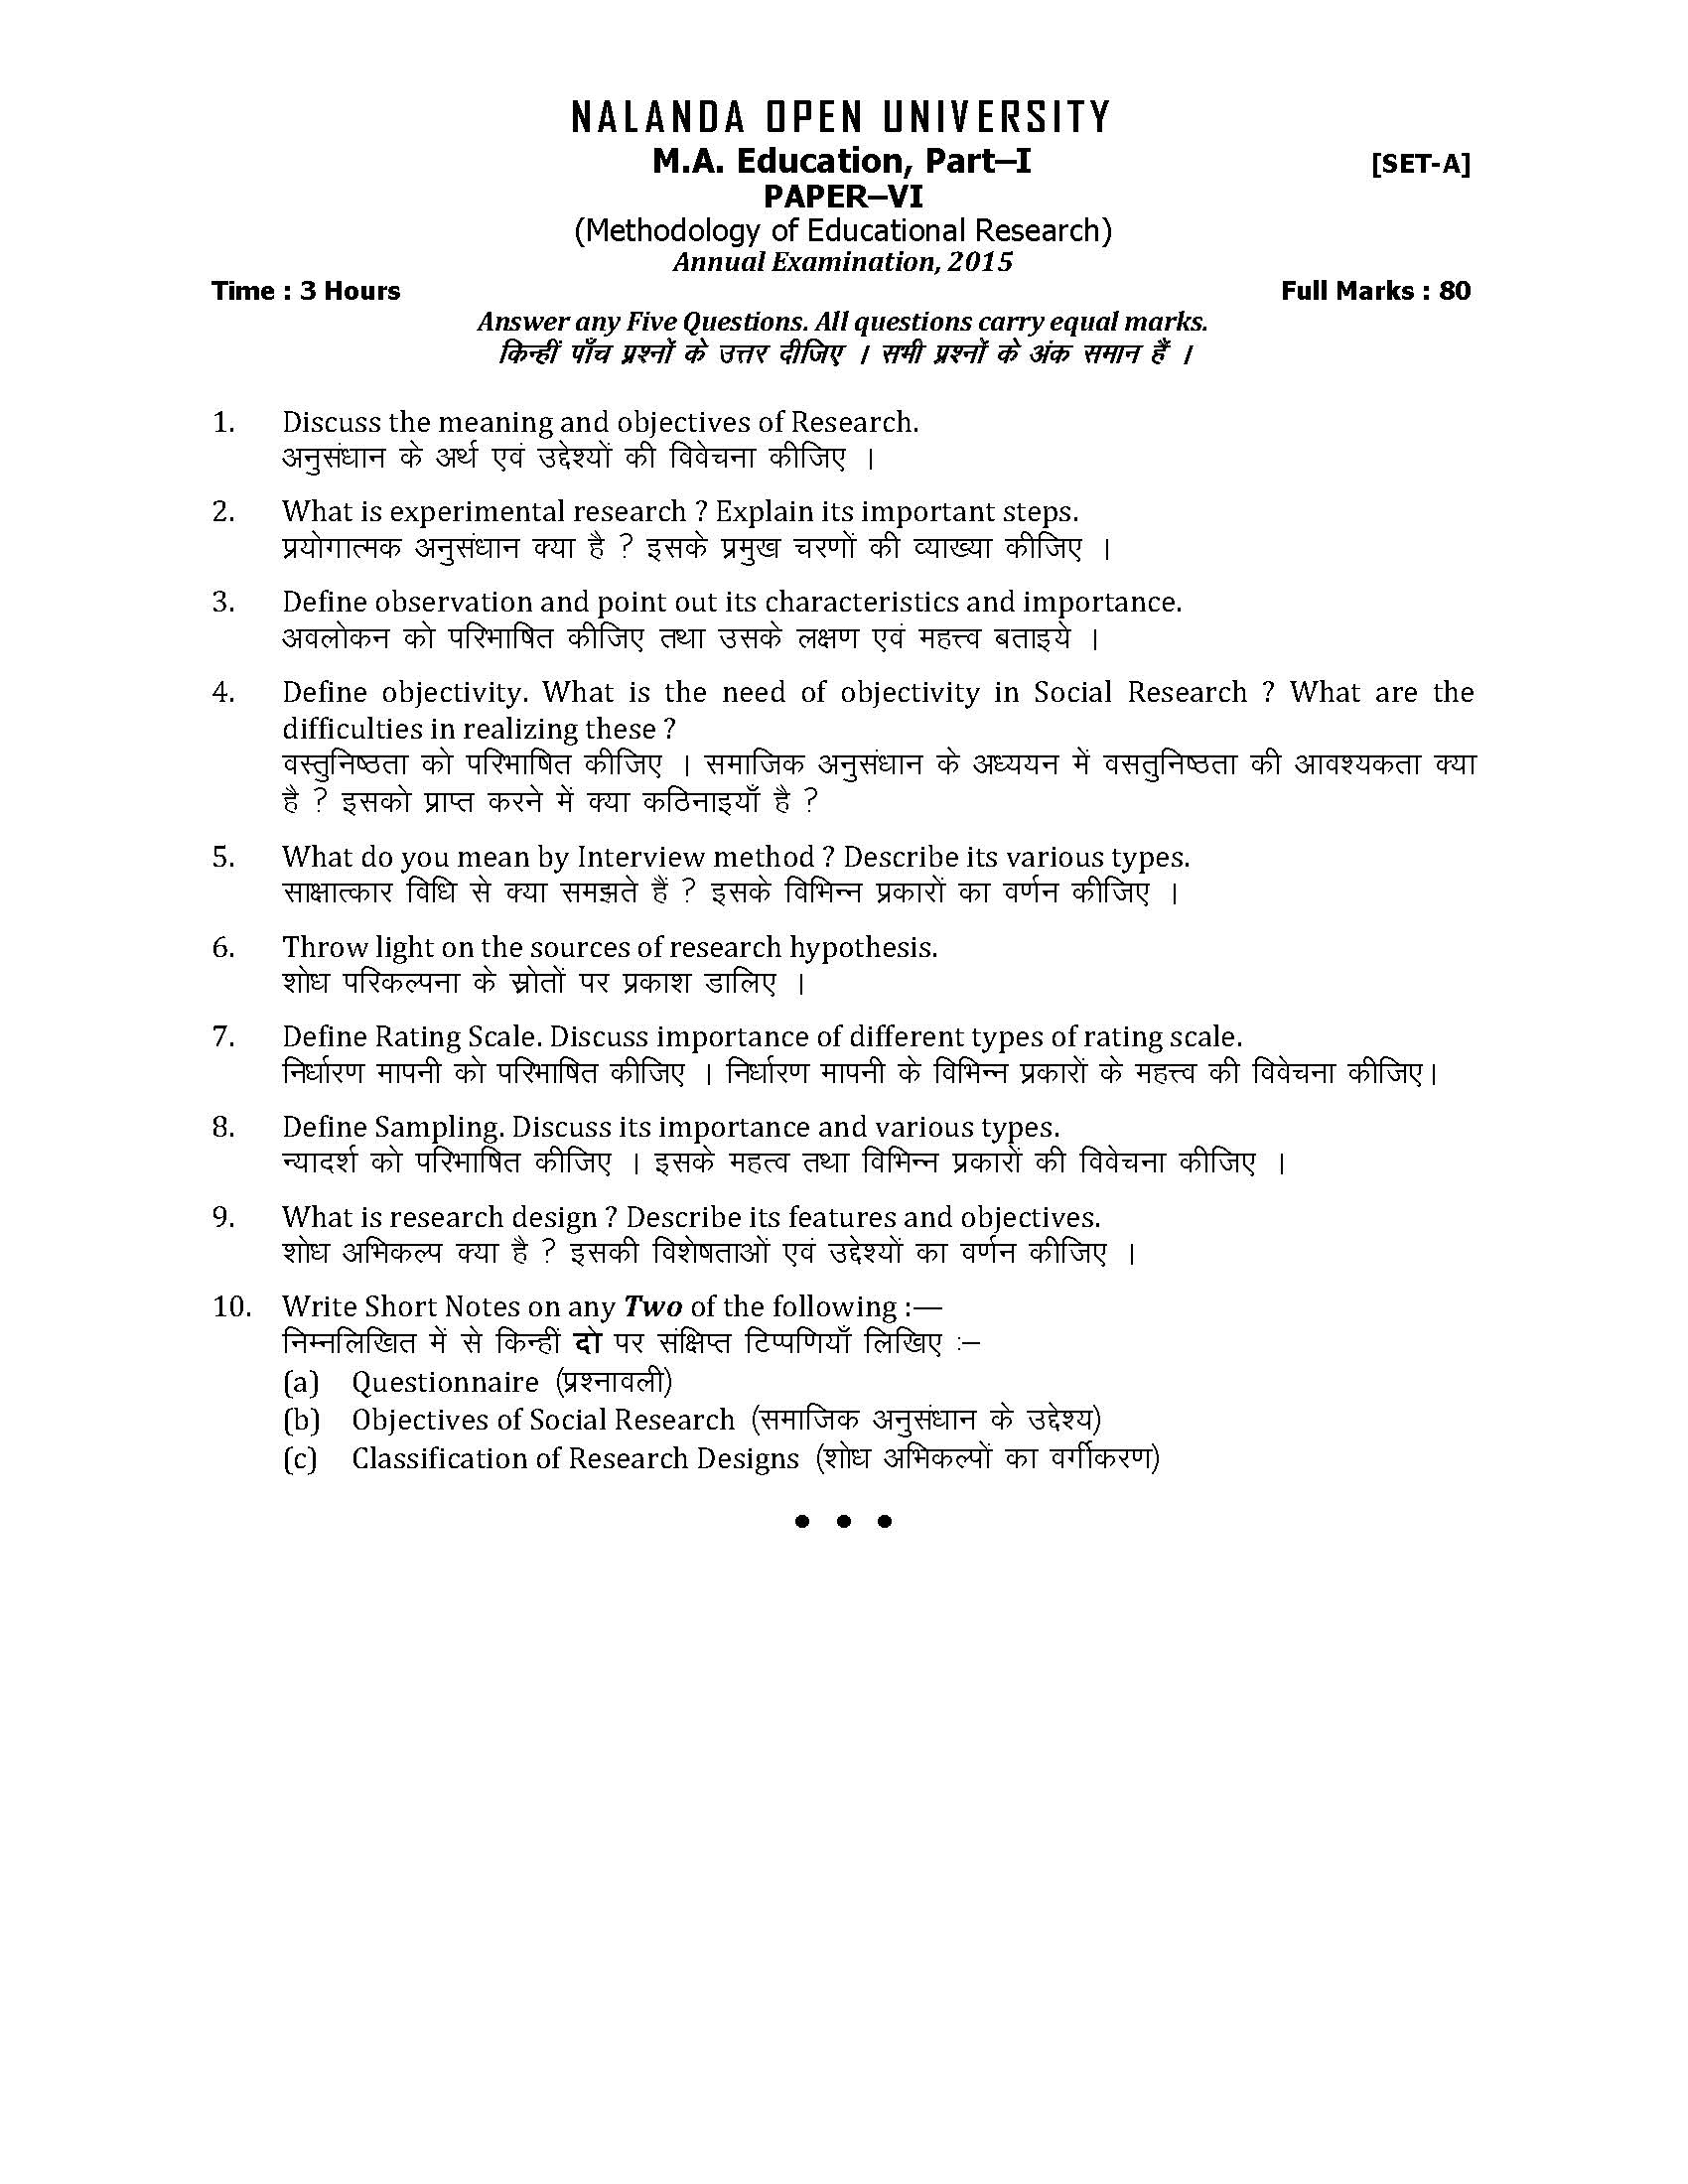 007 Educational Research Past Exam Papers Ma Education Methodology Of Part I Paper Amazing Full